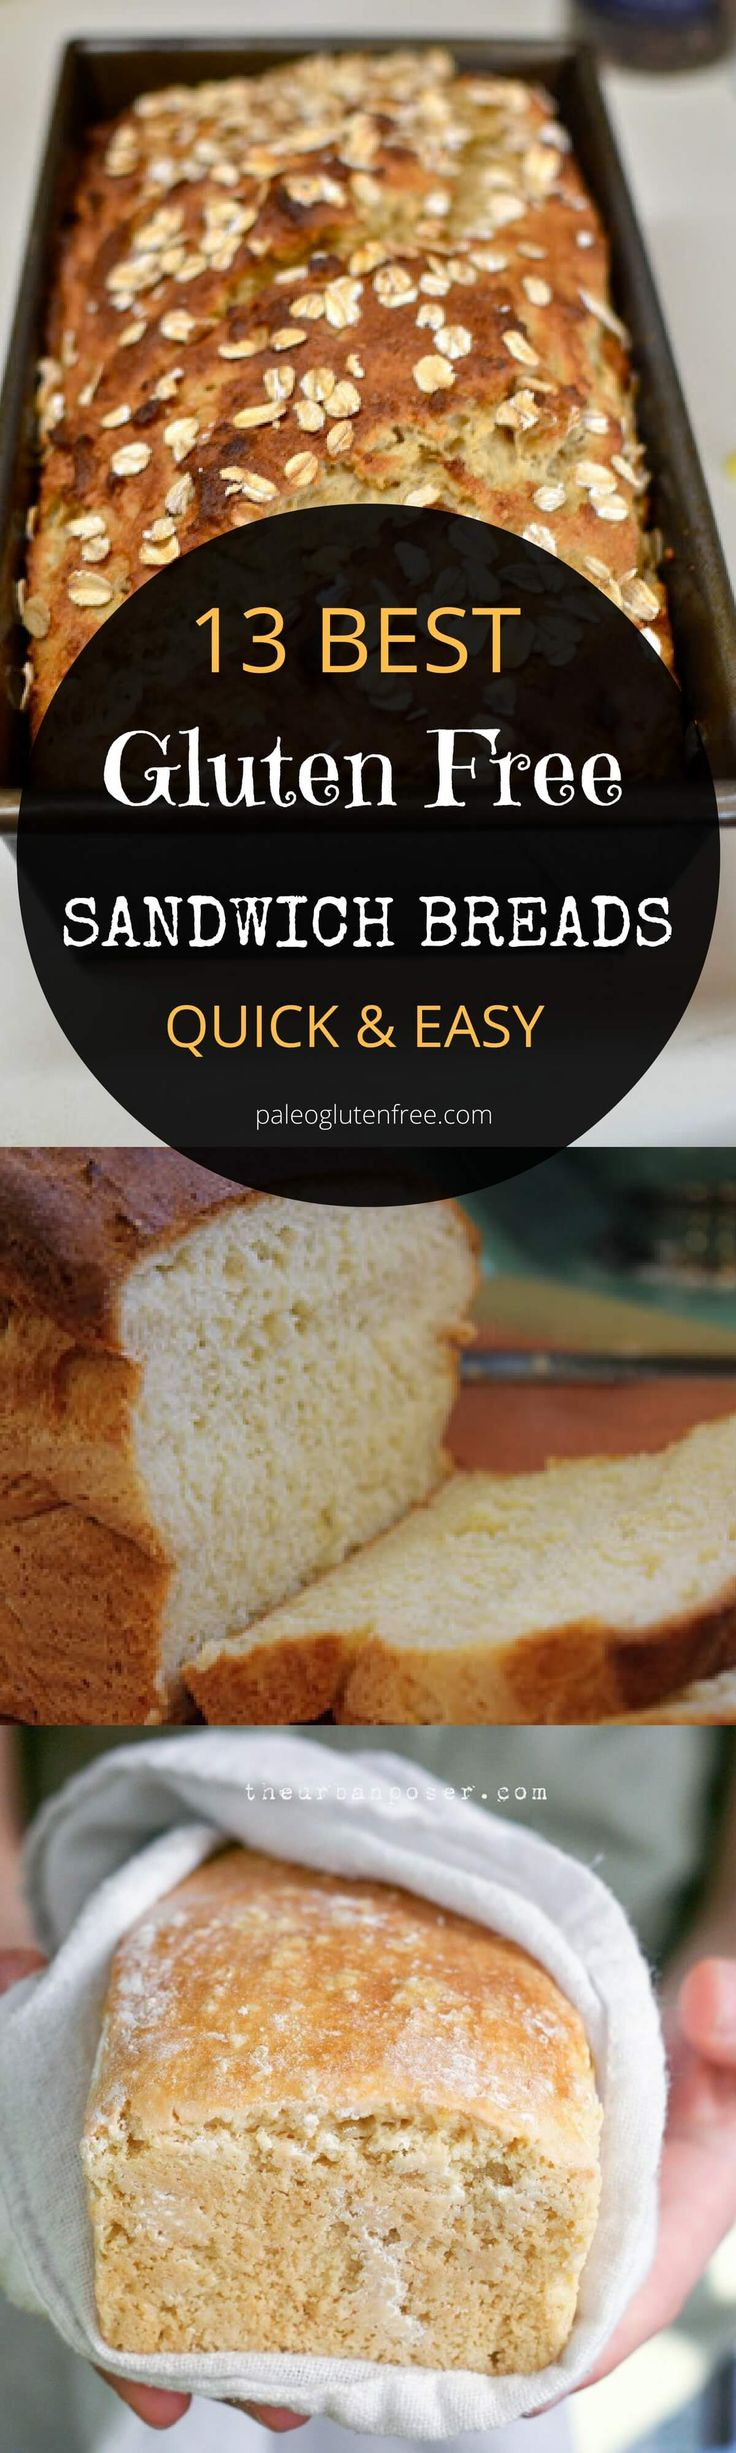 Easy gluten free bread recipes.